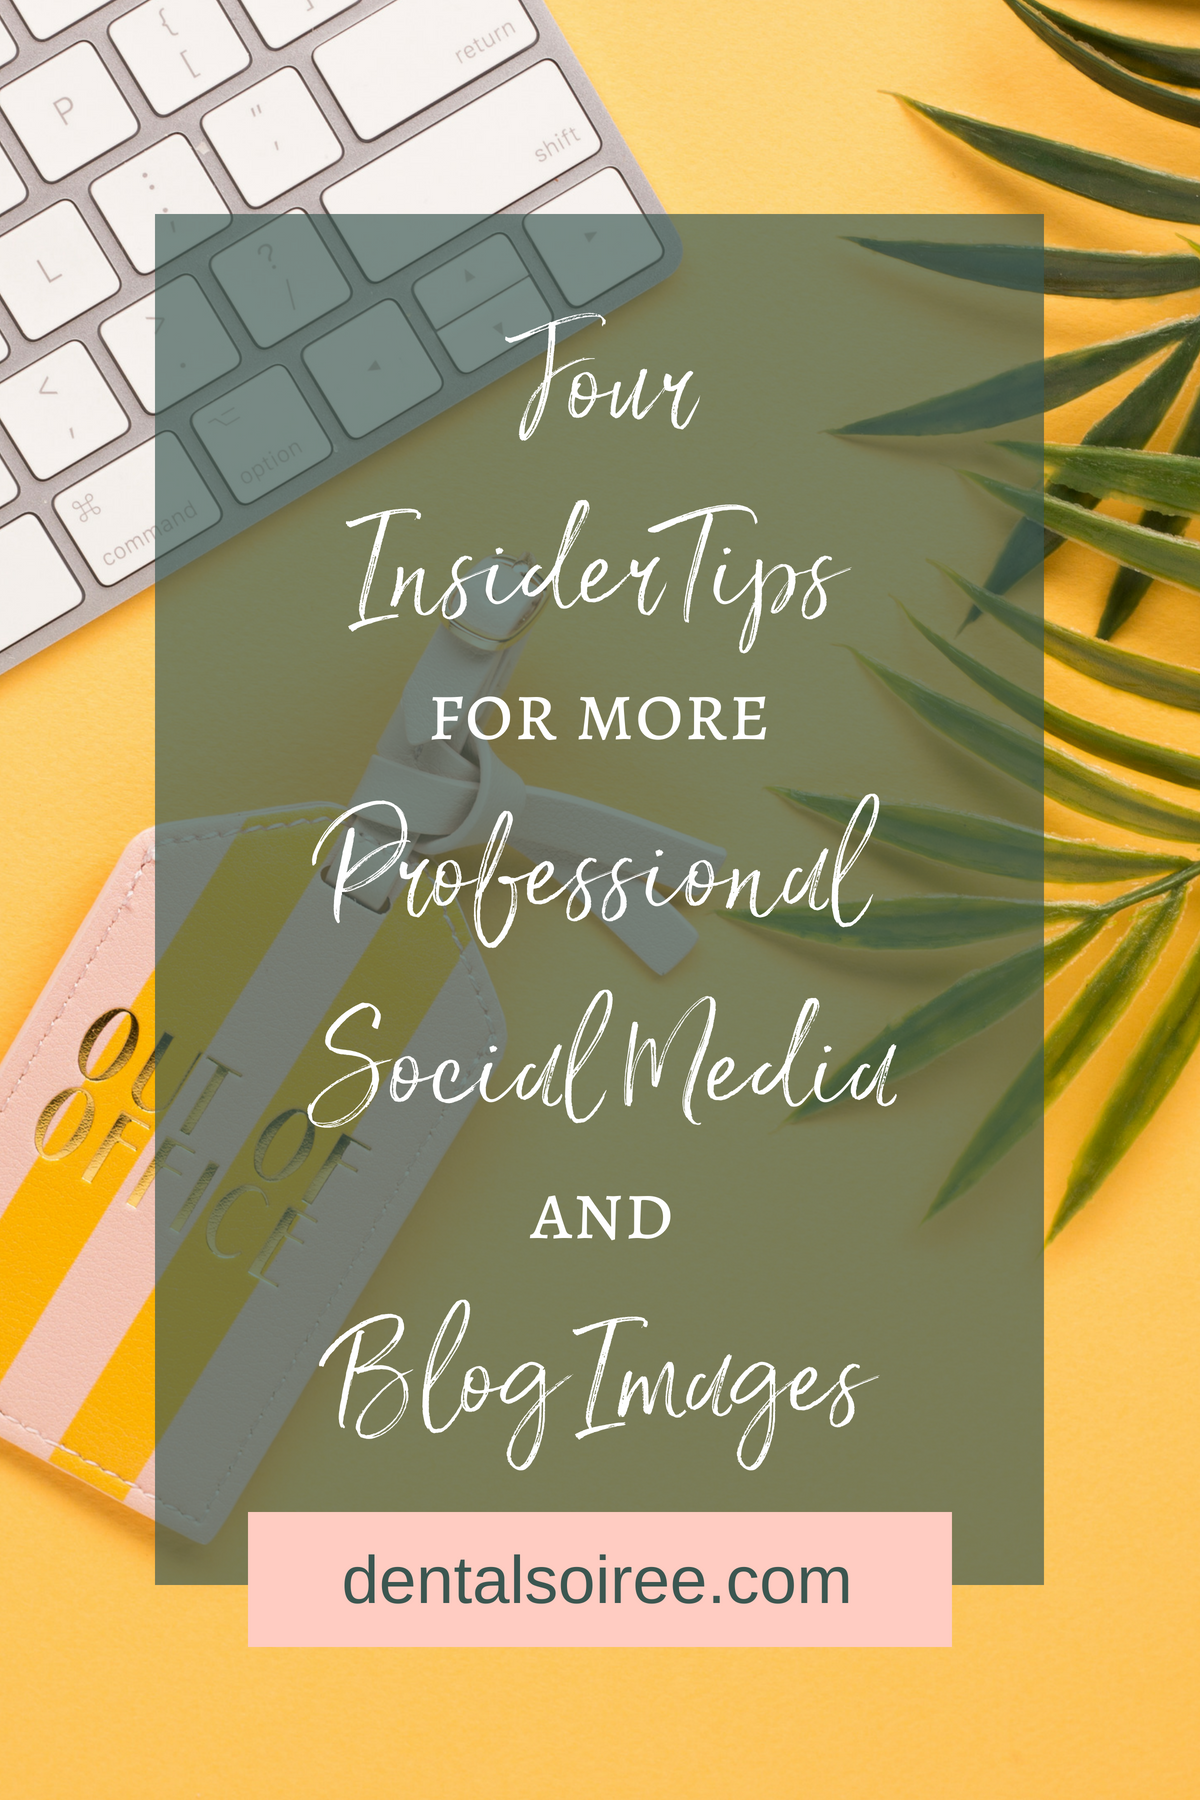 Four Insider Tips for More Professional Social Media and Blog Images